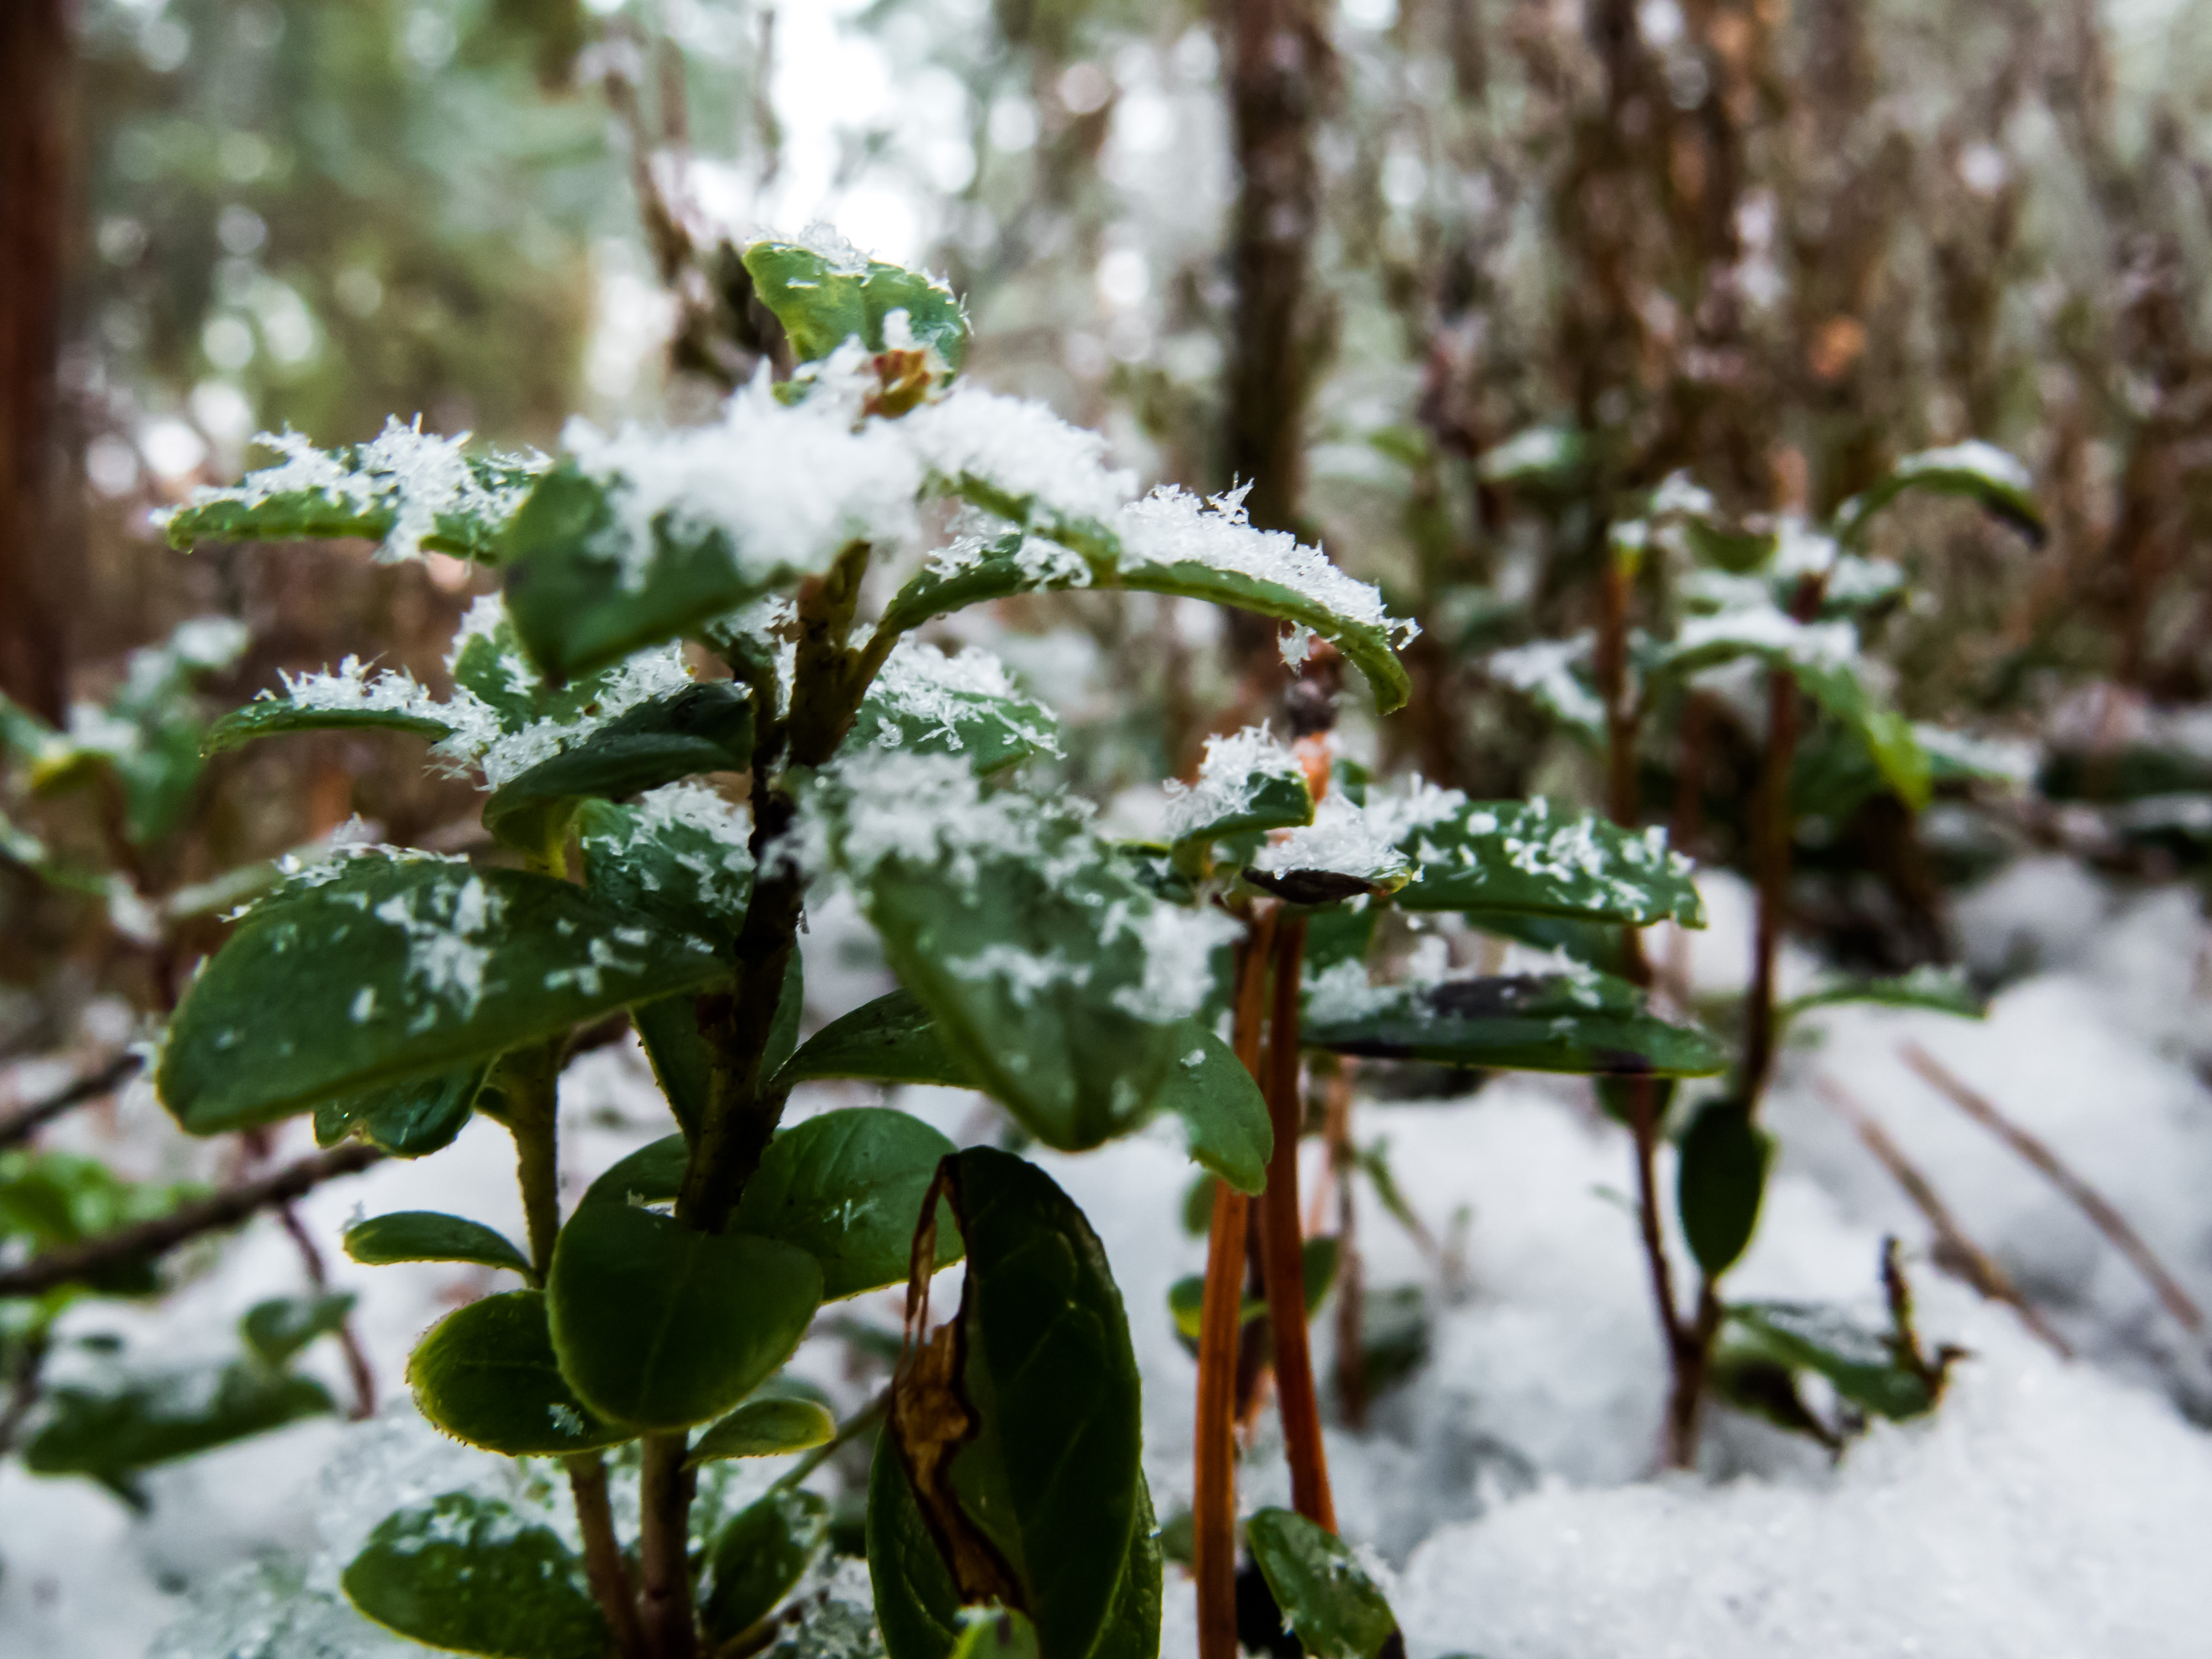 Snowy Forest, Woods, Skies, Natural, Nature, HQ Photo